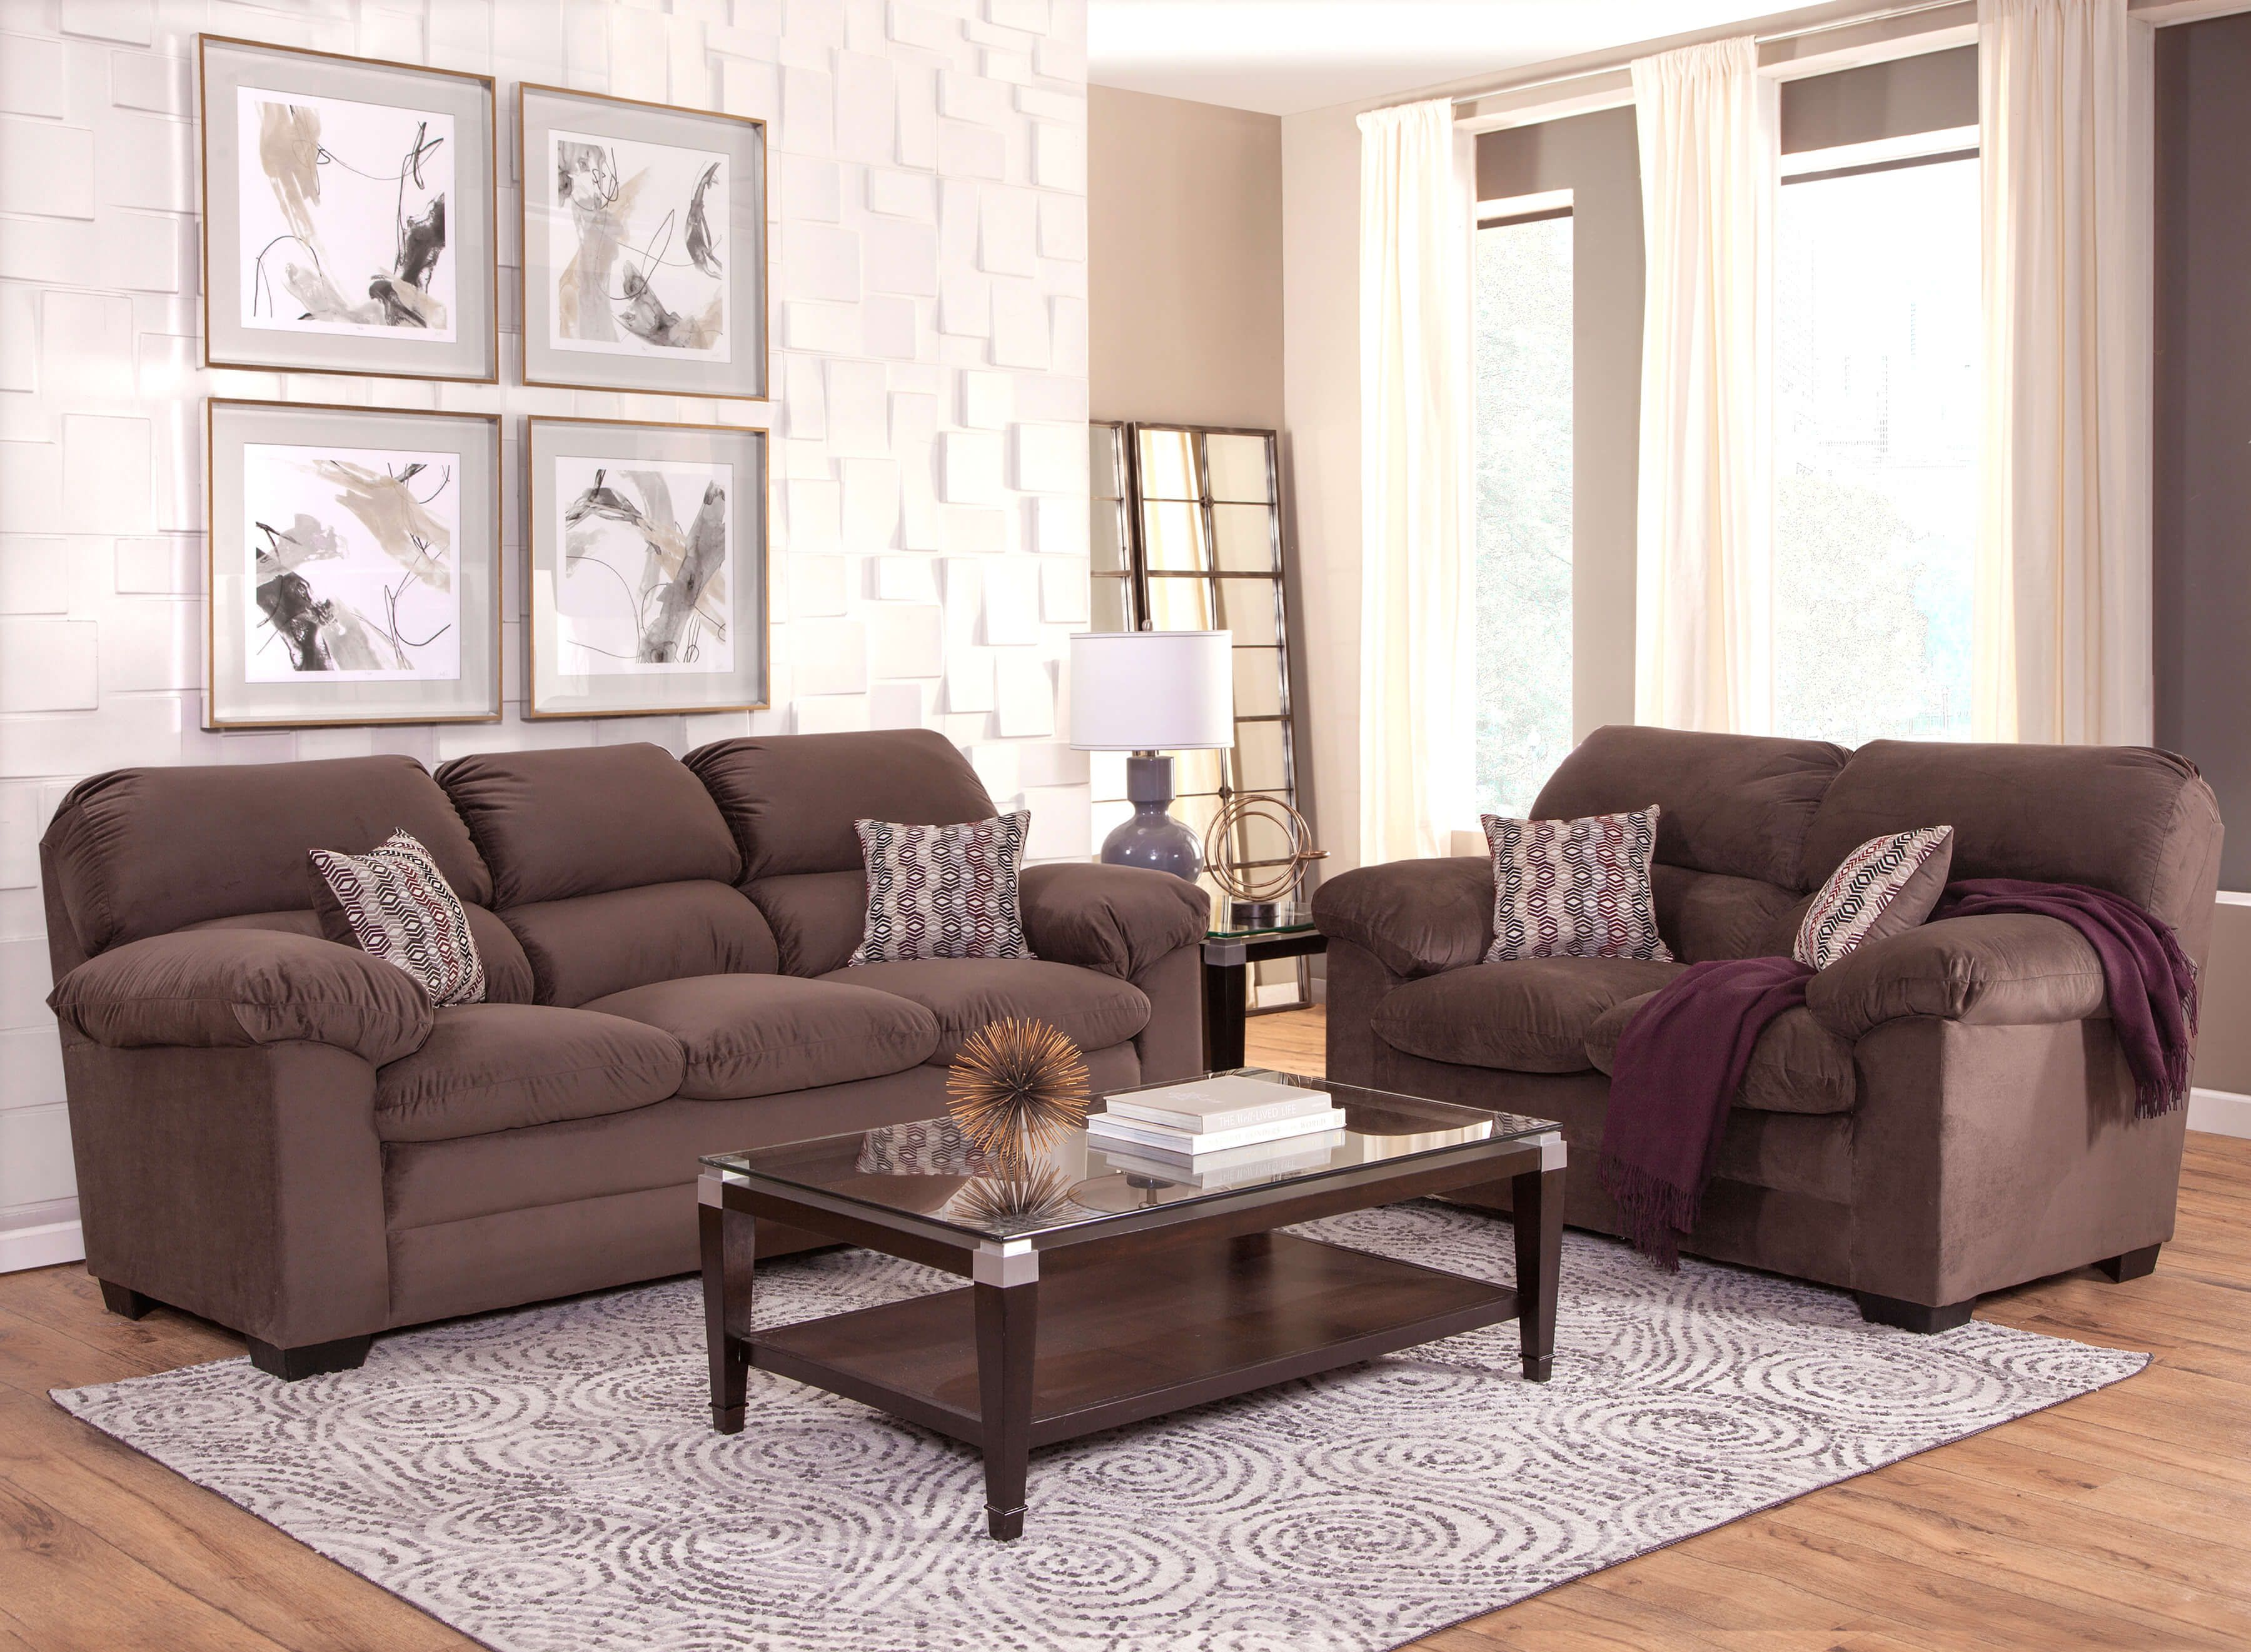 Alta Plush Toast Sofa And Loveseat Fabric Living Room Sets Living Room Sets Furniture Contemporary Living Room Furniture Modern Sofa Living Room